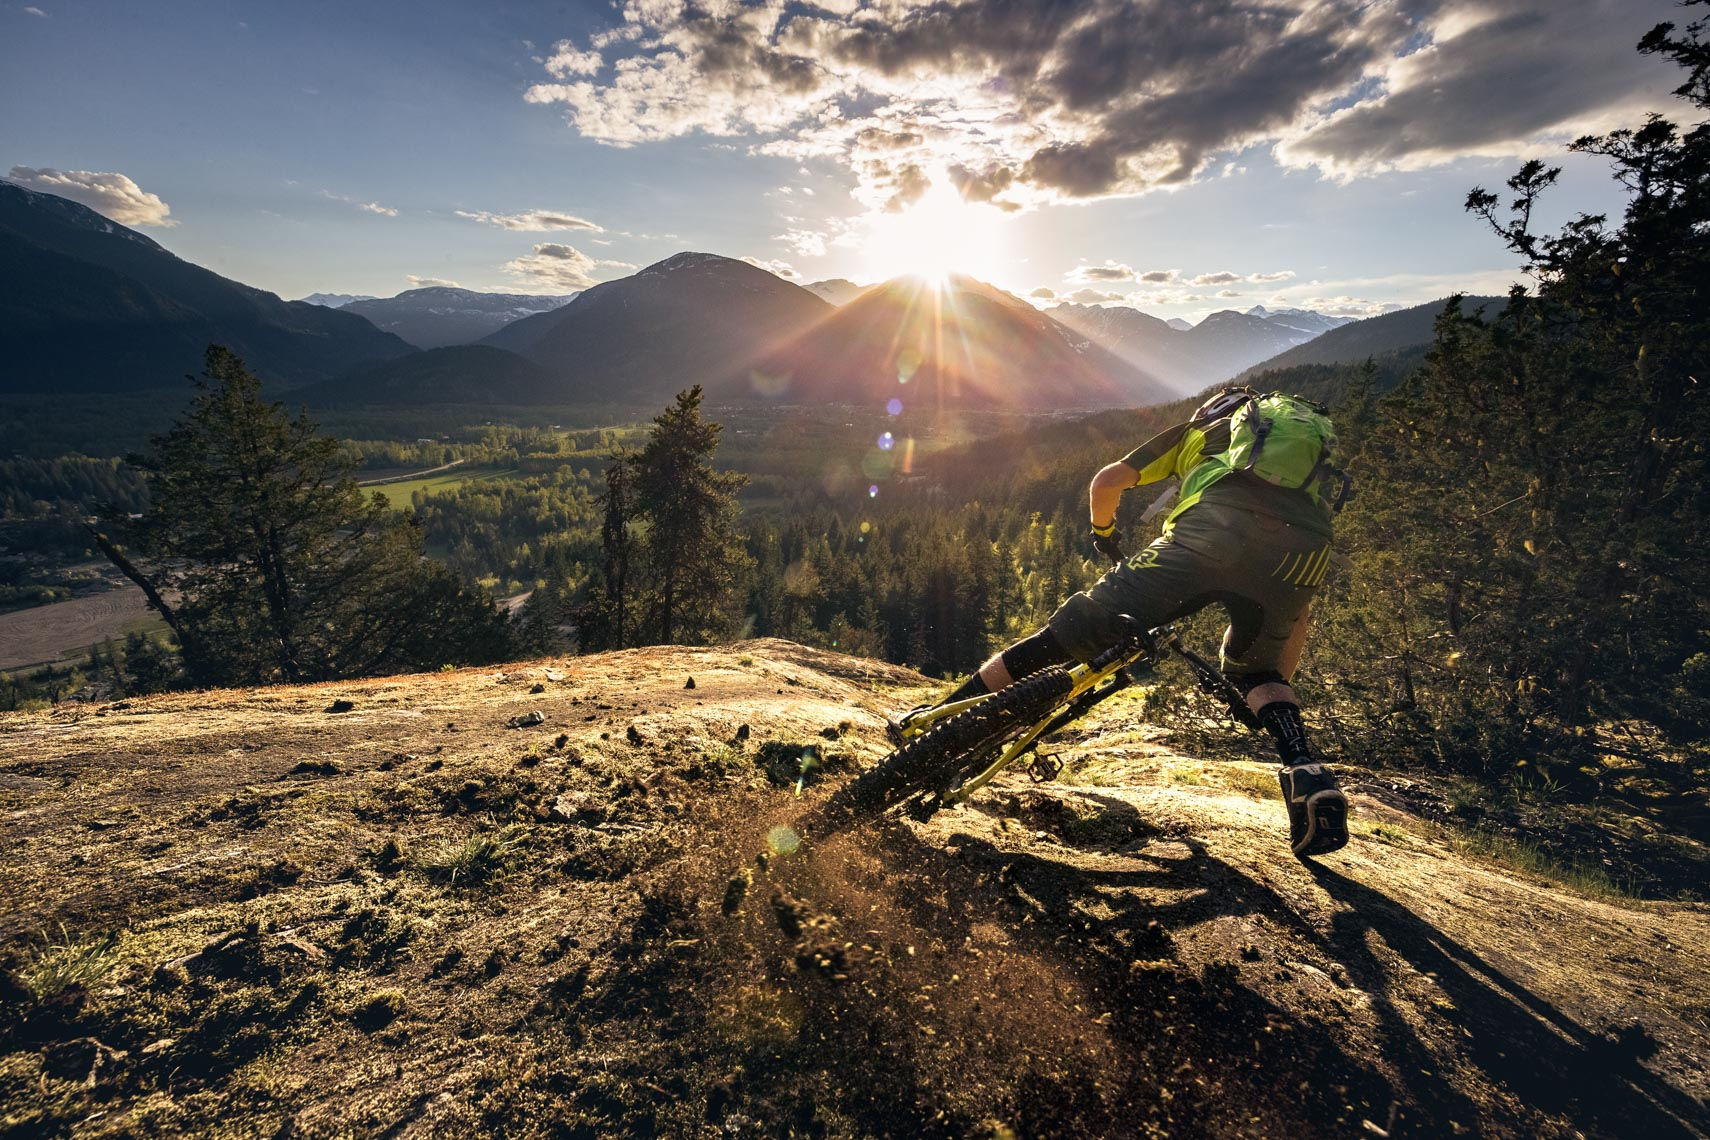 Mountain bike action photography shot in Whistler for Camelbak